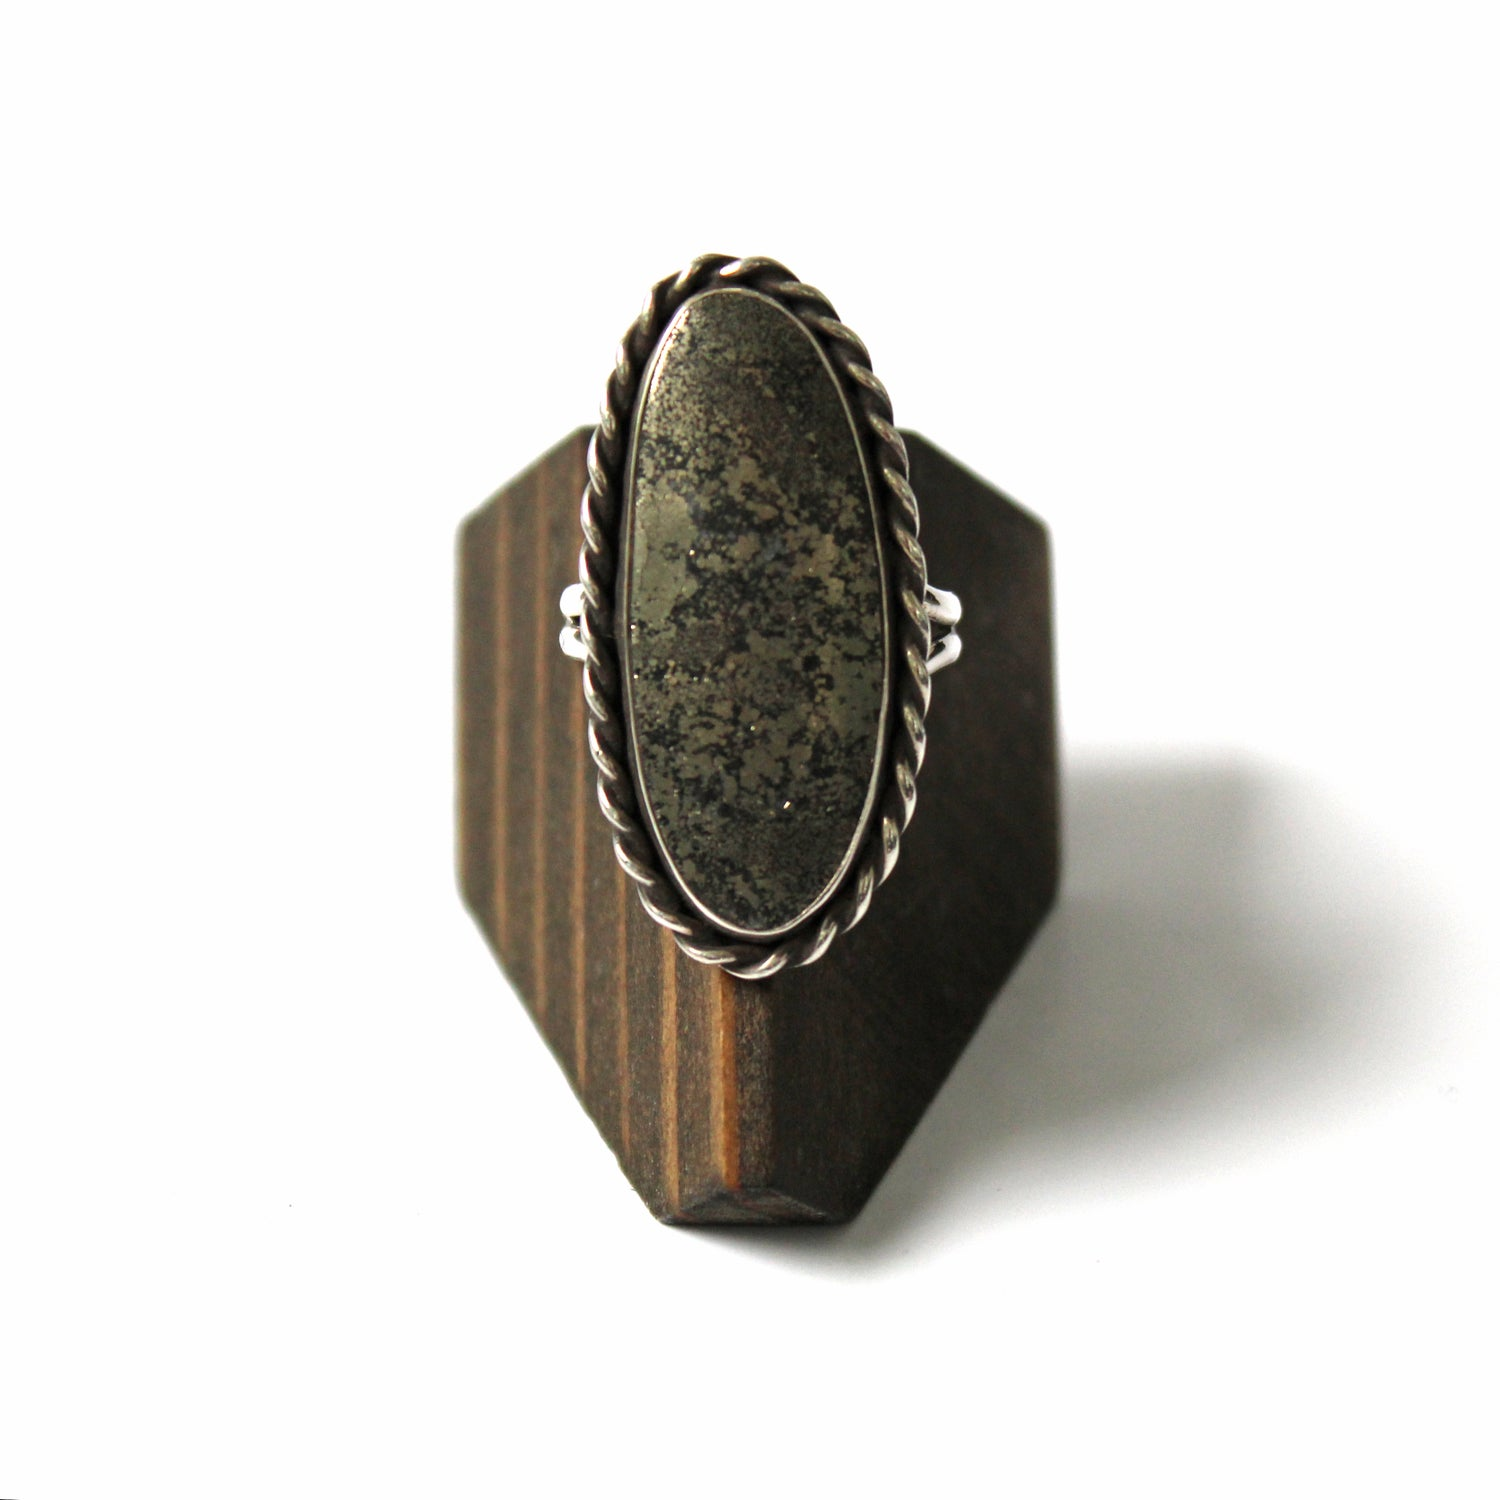 Image of Pyrite Sterling Silver Ring - Size 9.5